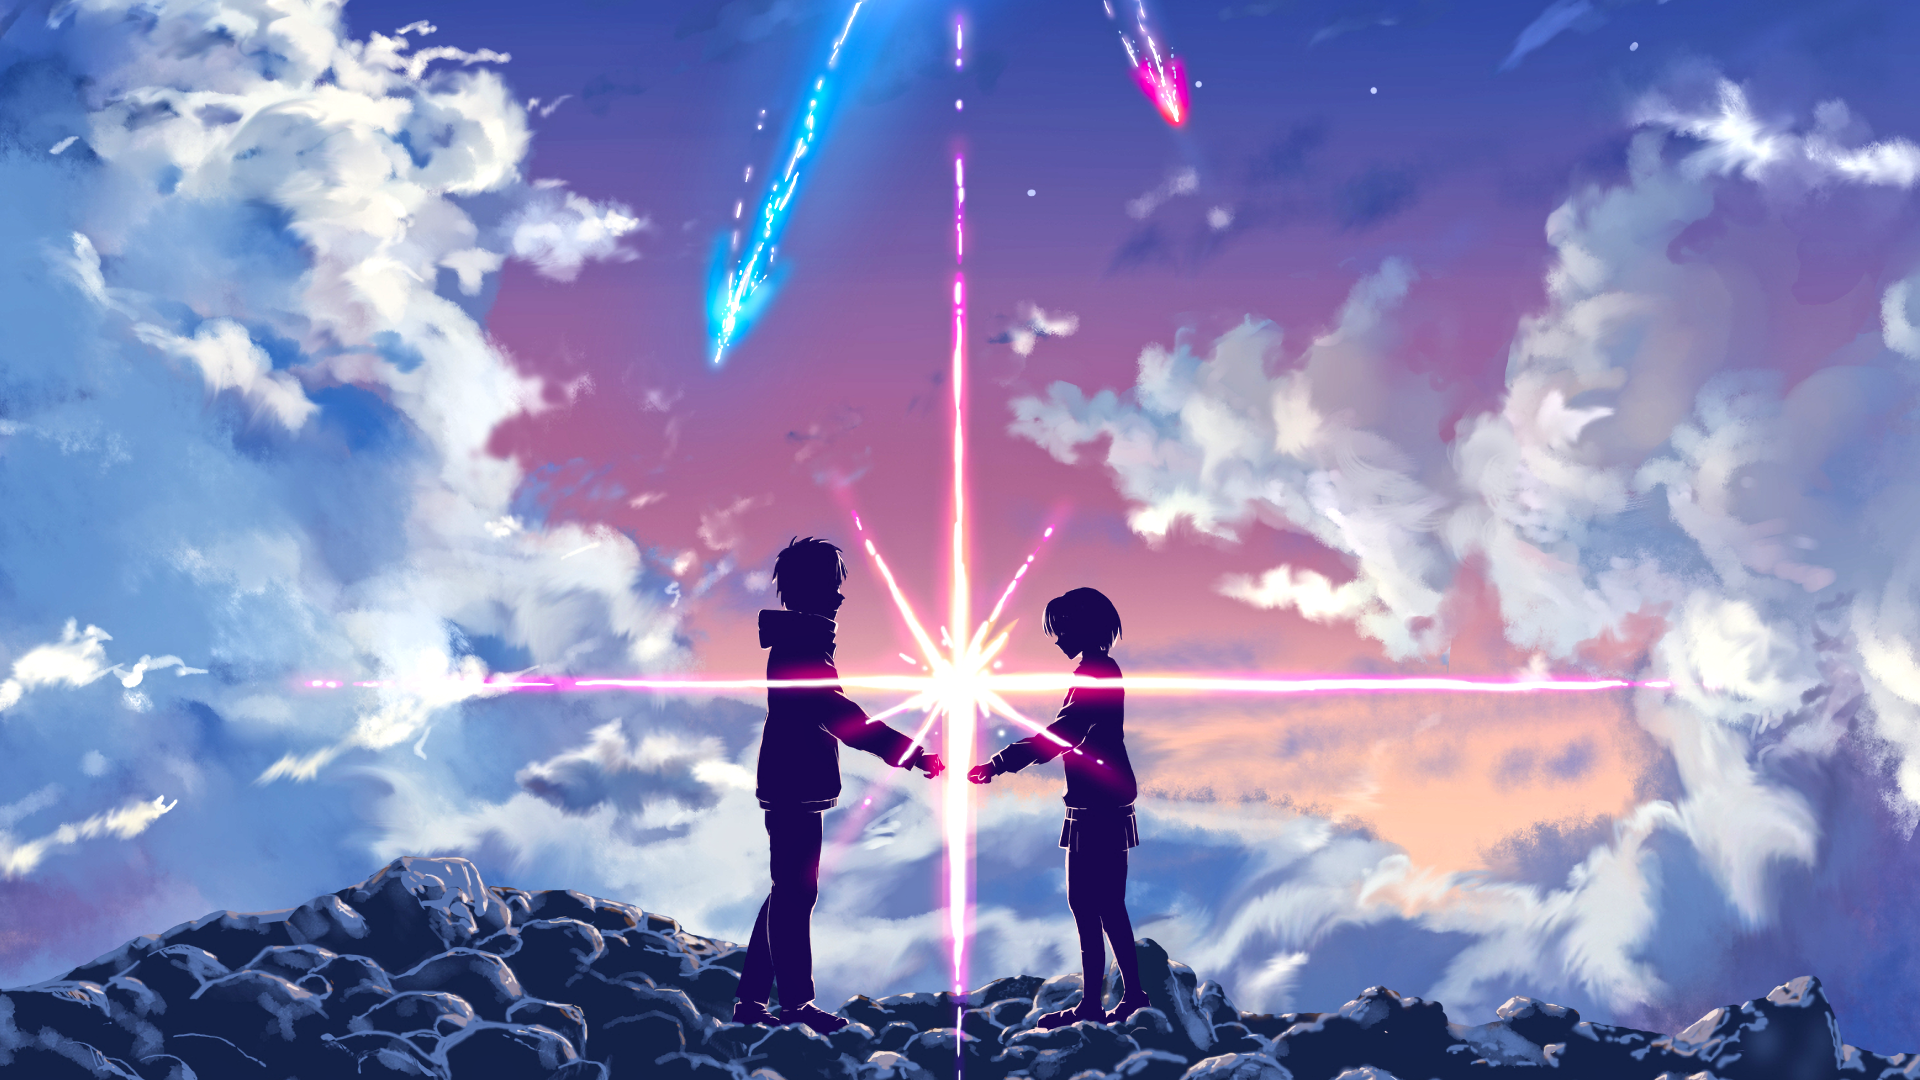 Your Name 1920x1080 In 2020 Your Name Anime Kimi No Na Wa Wallpaper Kimi No Na Wa